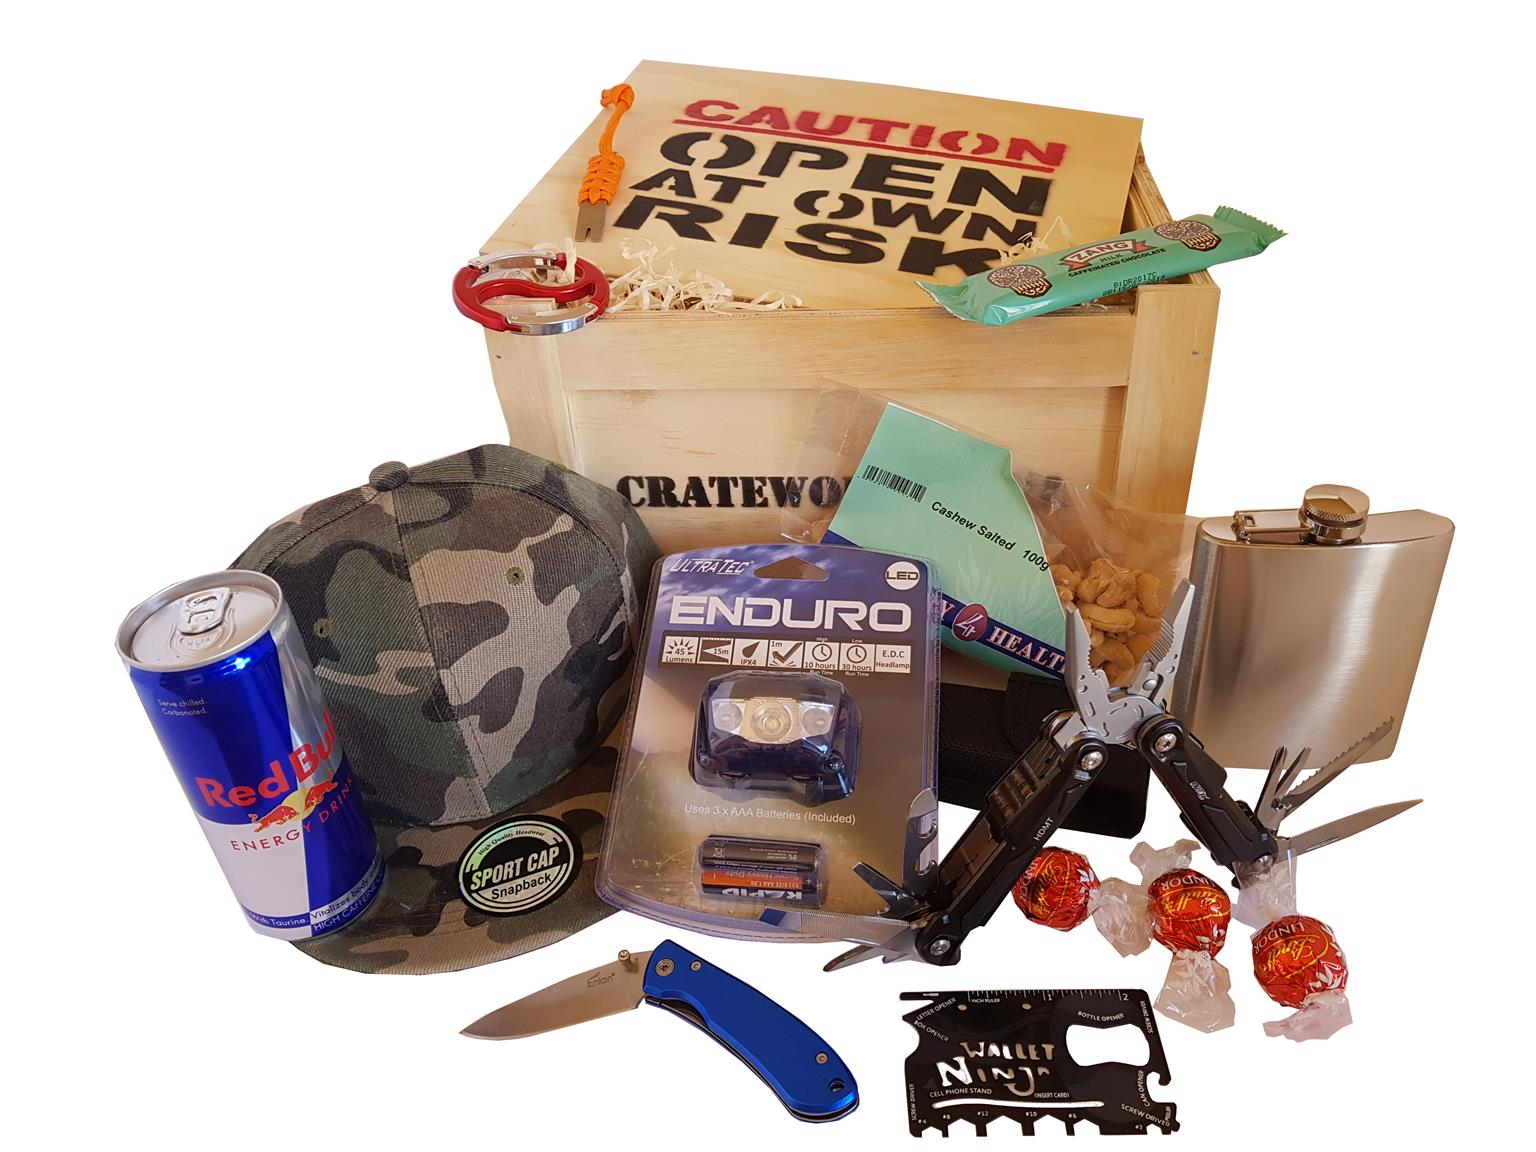 Online Men's Gifting Business for sale